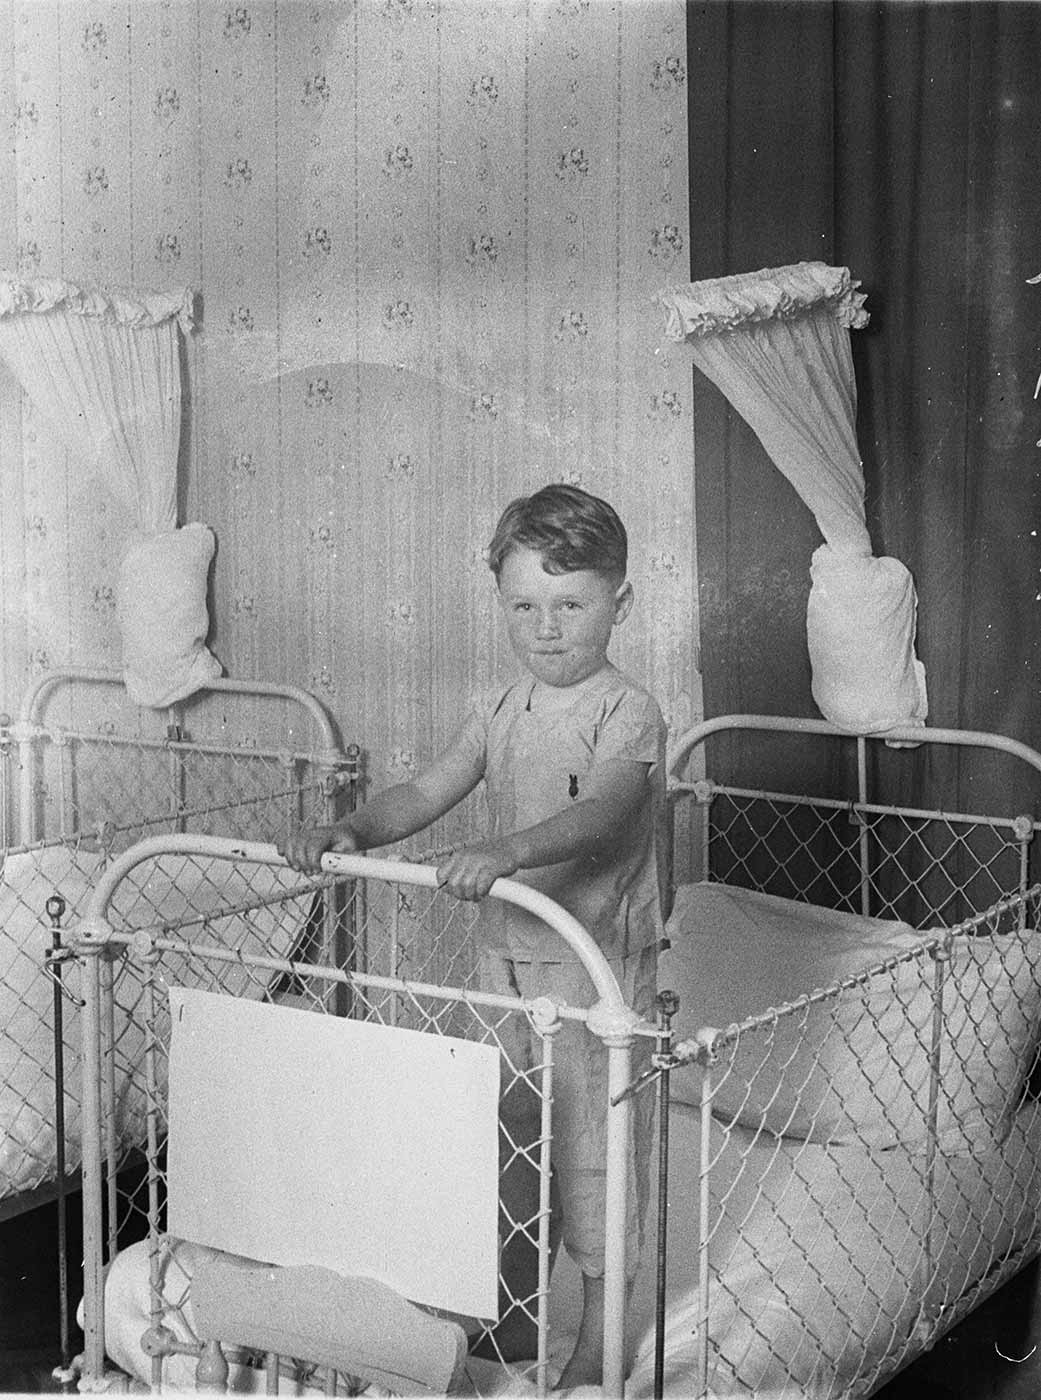 Boy standing in a metal framed cot with wire mesh sides. - click to view larger image